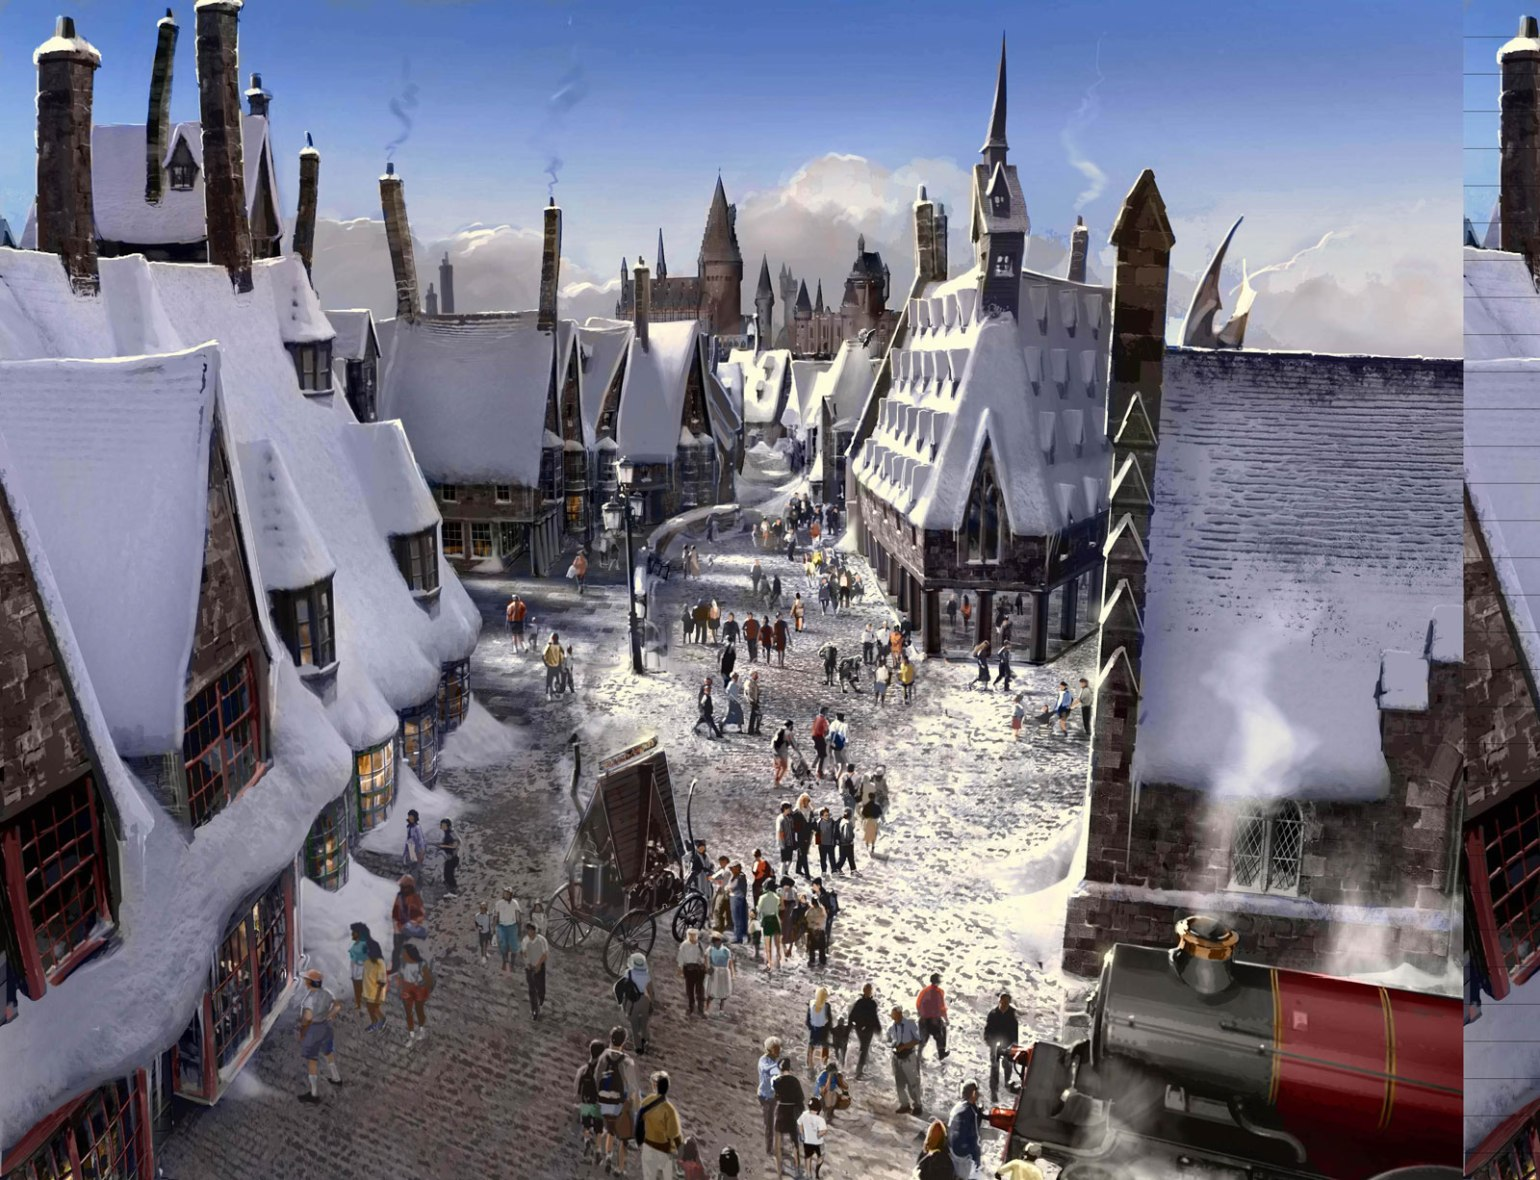 Wizarding-World-of-Harry-Potter-Harry-Potter-Theme-Park-1